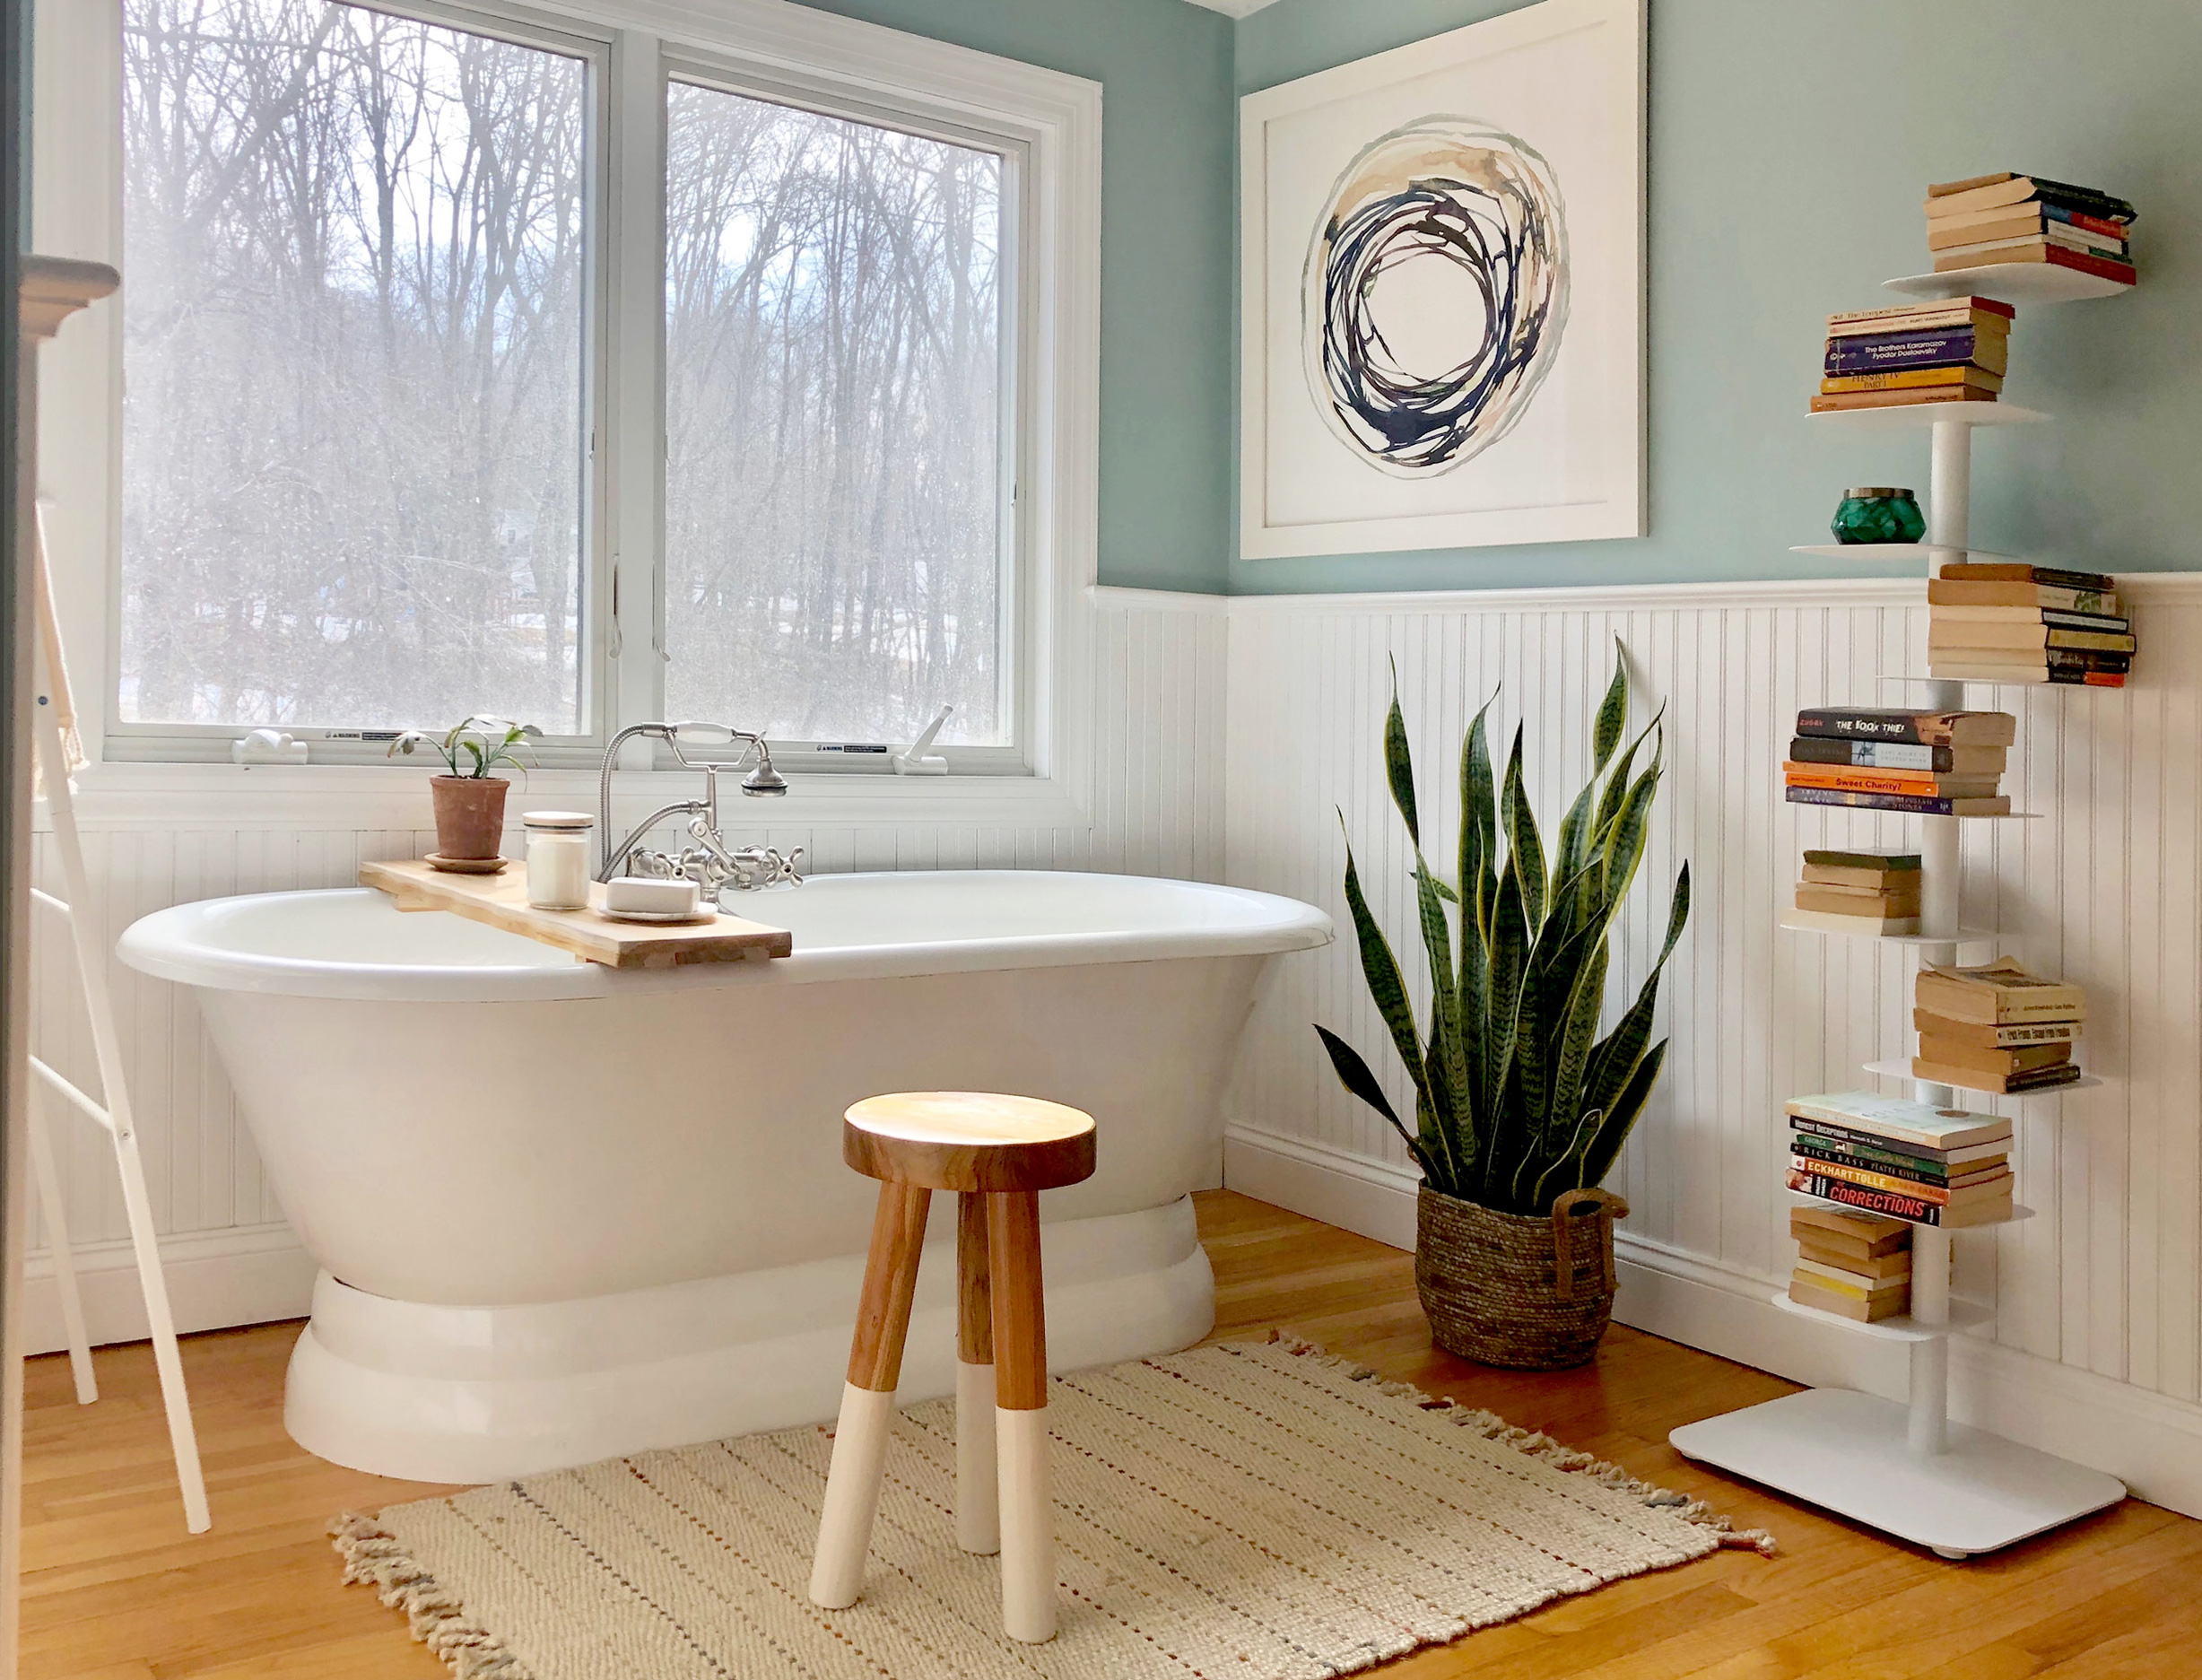 Bathtub Nook -